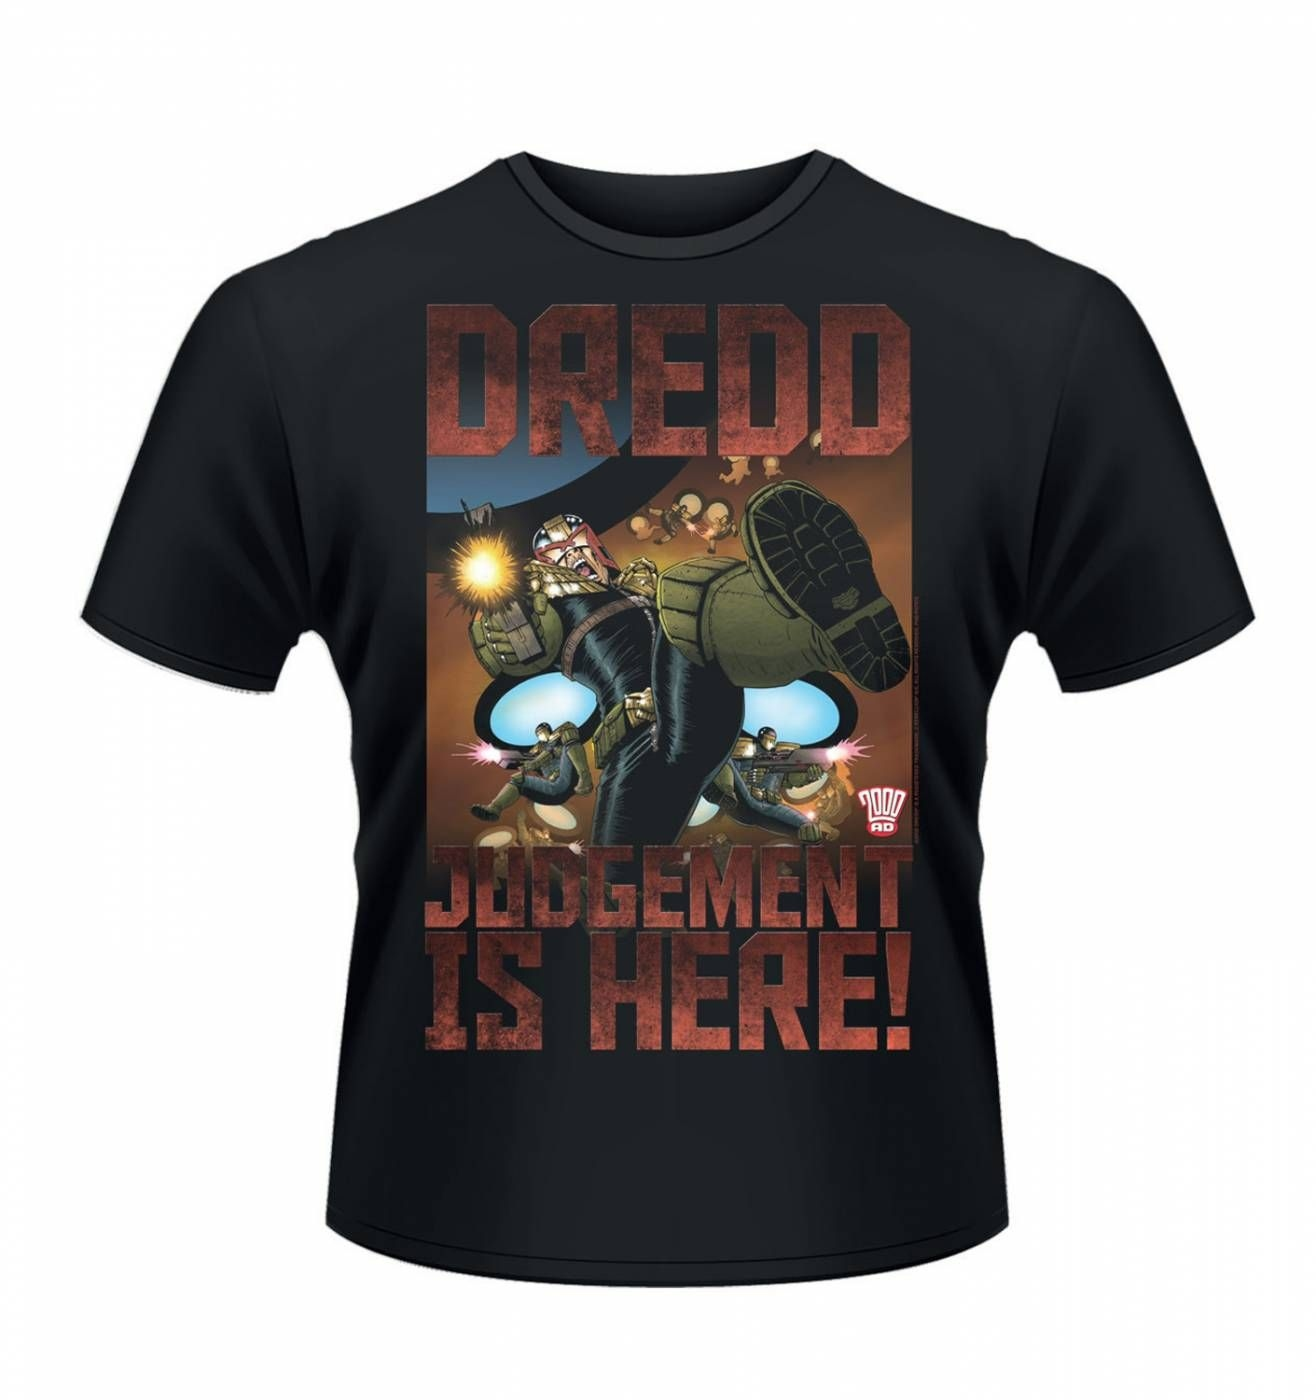 OFFICIAL Judge Dredd Judgement is here men's t-shirt